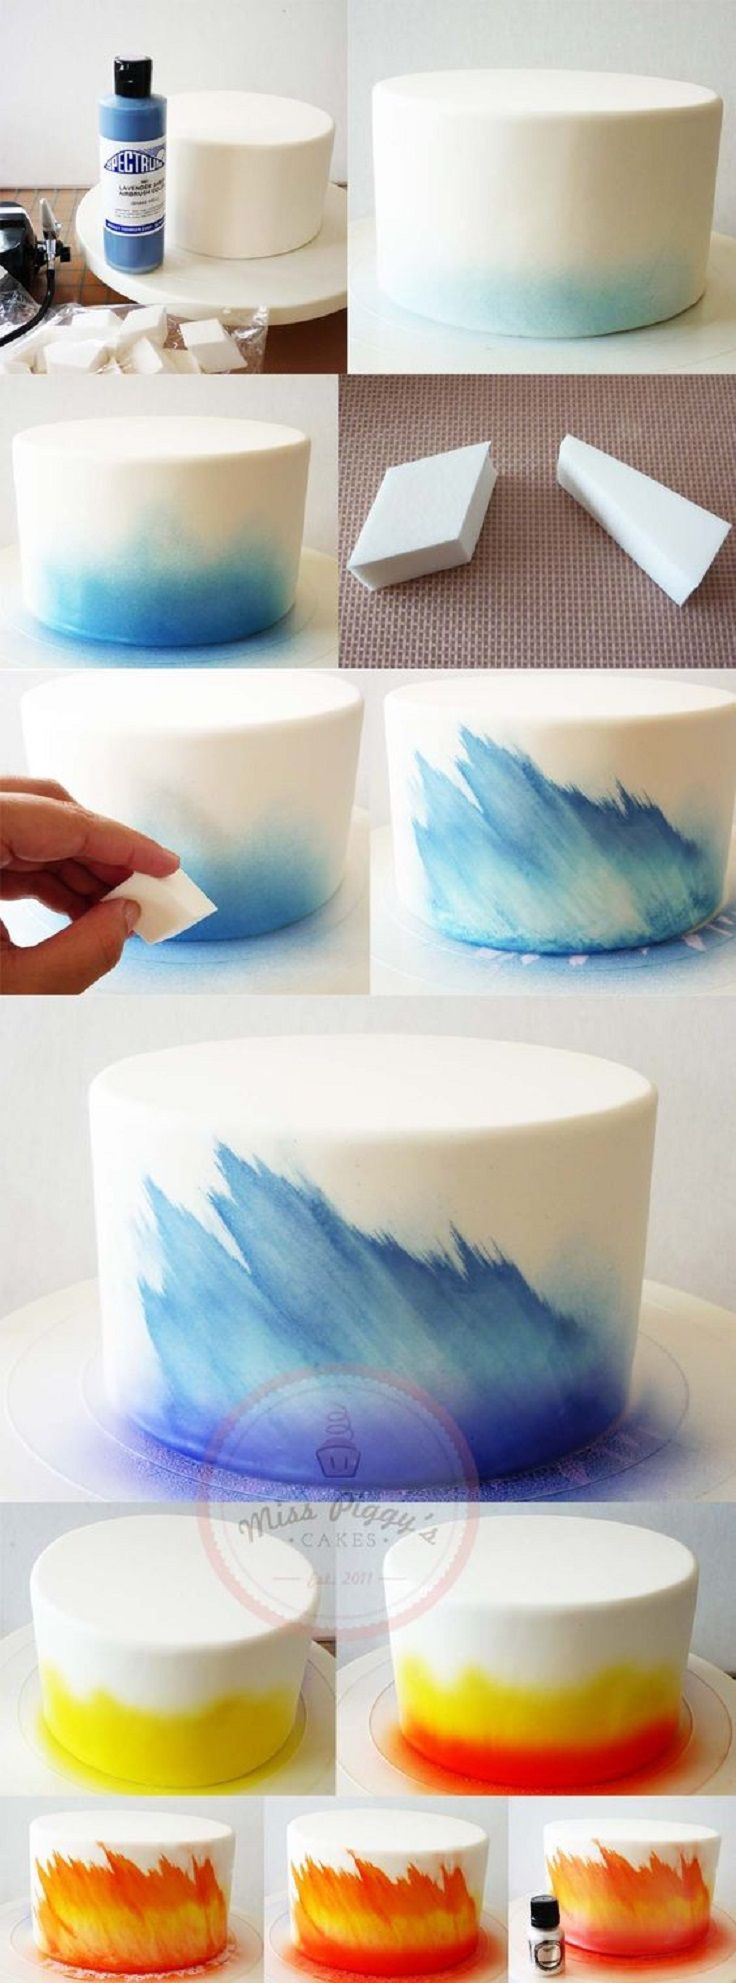 Best 25 cake boss cakes ideas on pinterest for Airbrush cake decoration